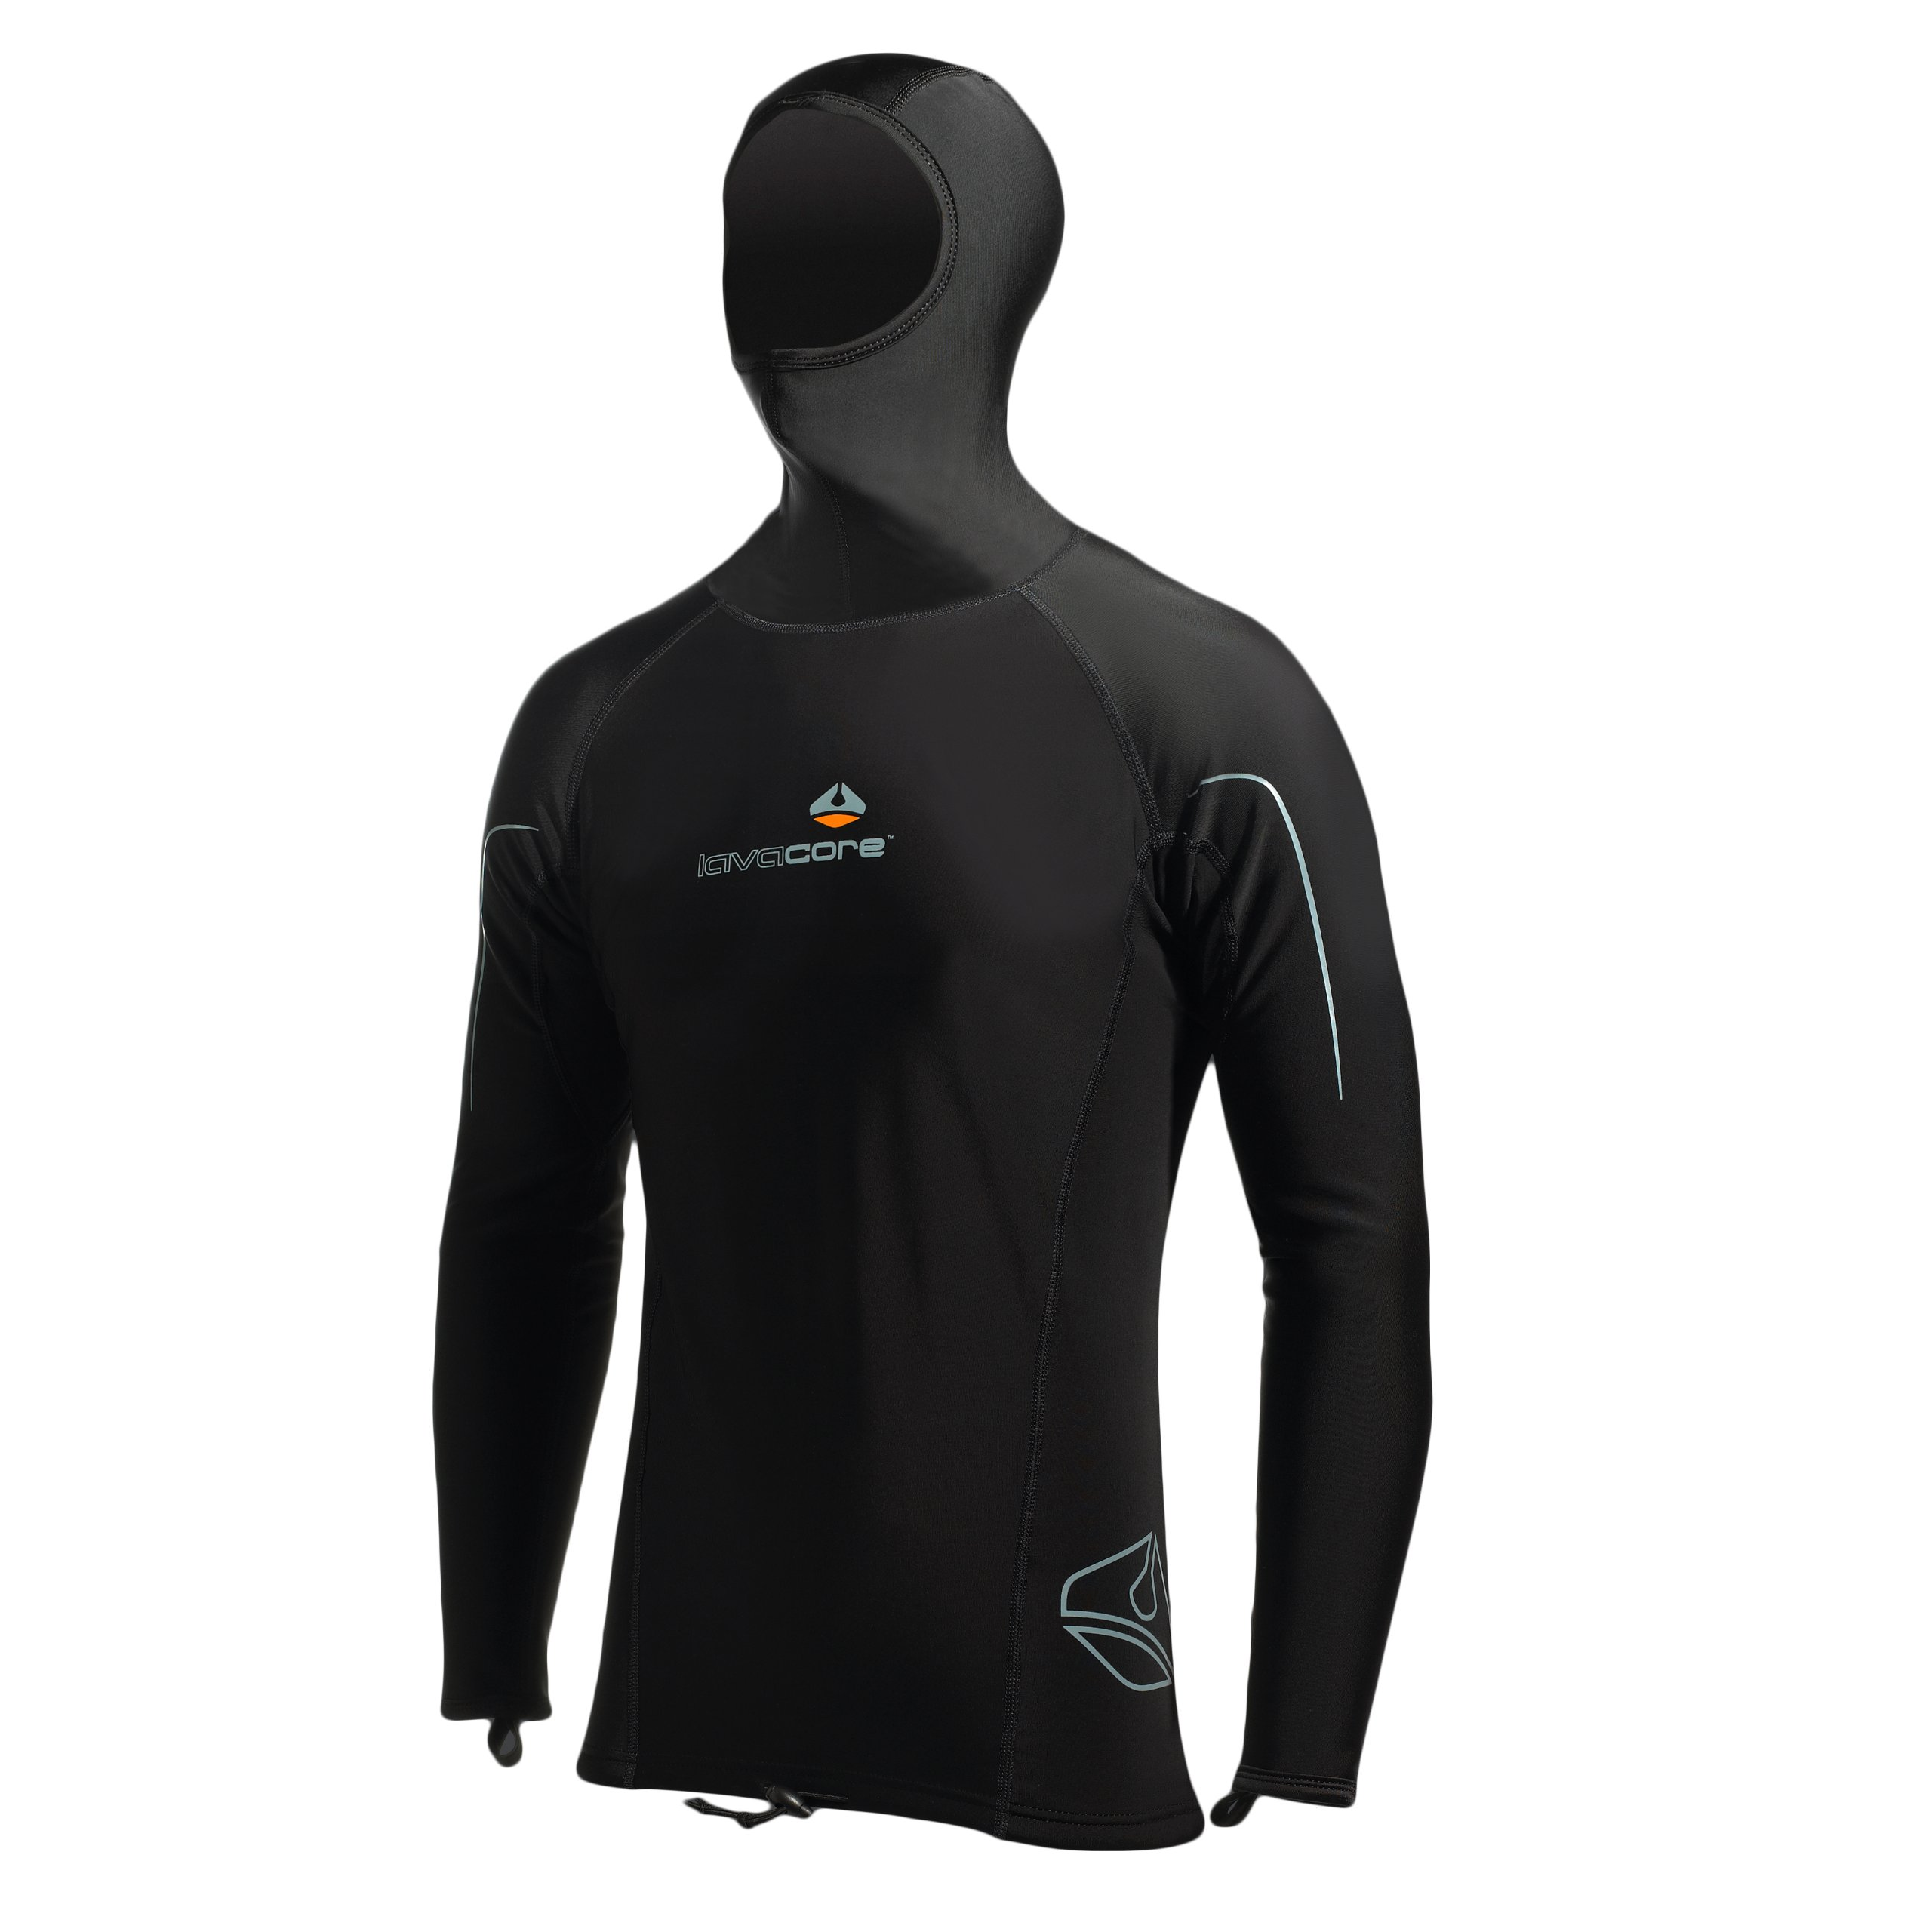 Lavacore by Oceanic Men's Long Sleeve Hooded Shirt - X-Large